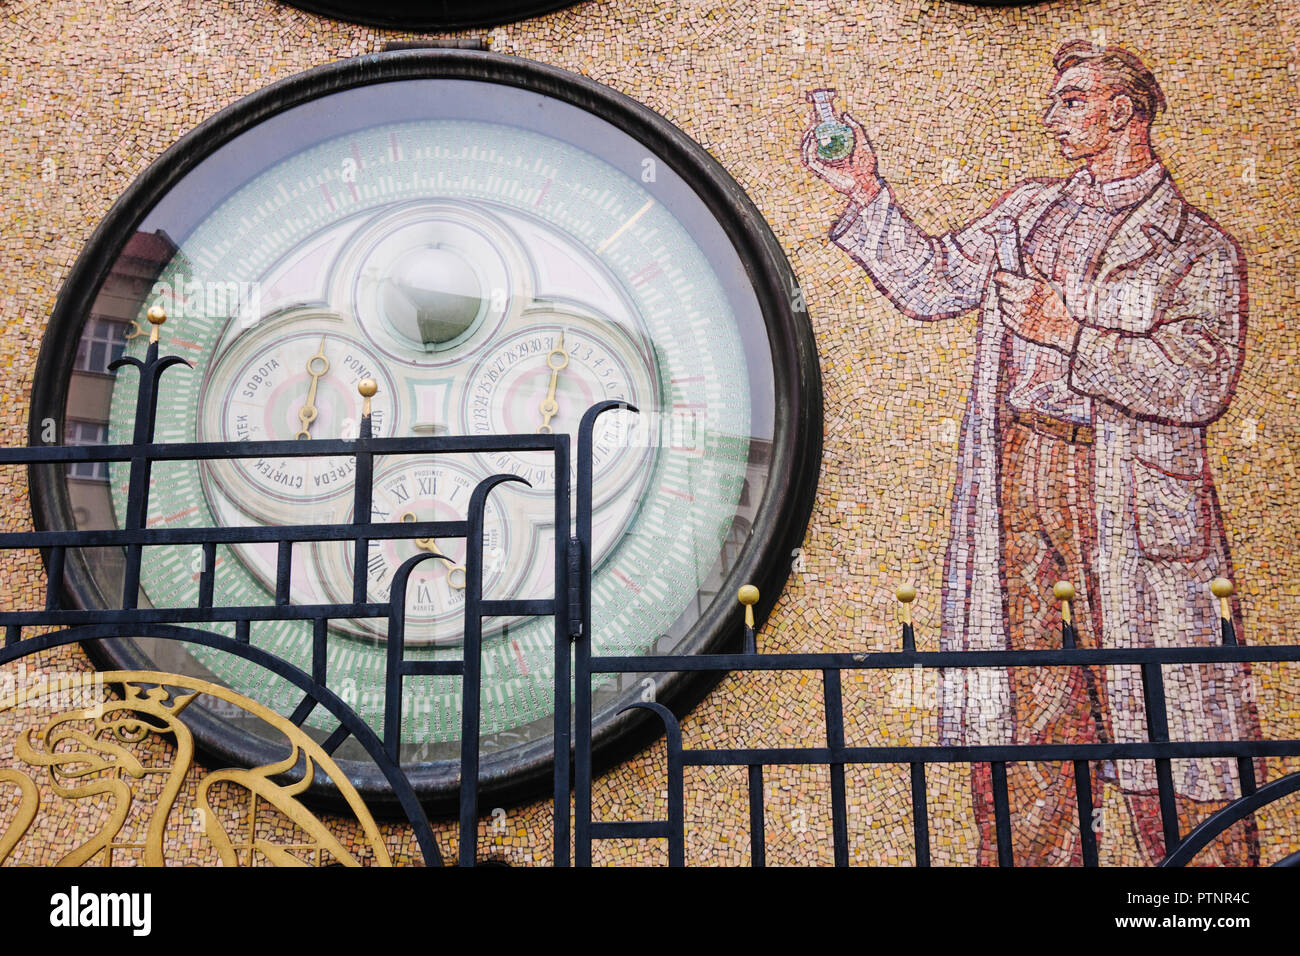 Olomouc, Moravia, Czech Republic :  Astronomical clock of the Town Hall rebuilt in Socialist-Realist style in the 1950s, after the original was damage - Stock Image